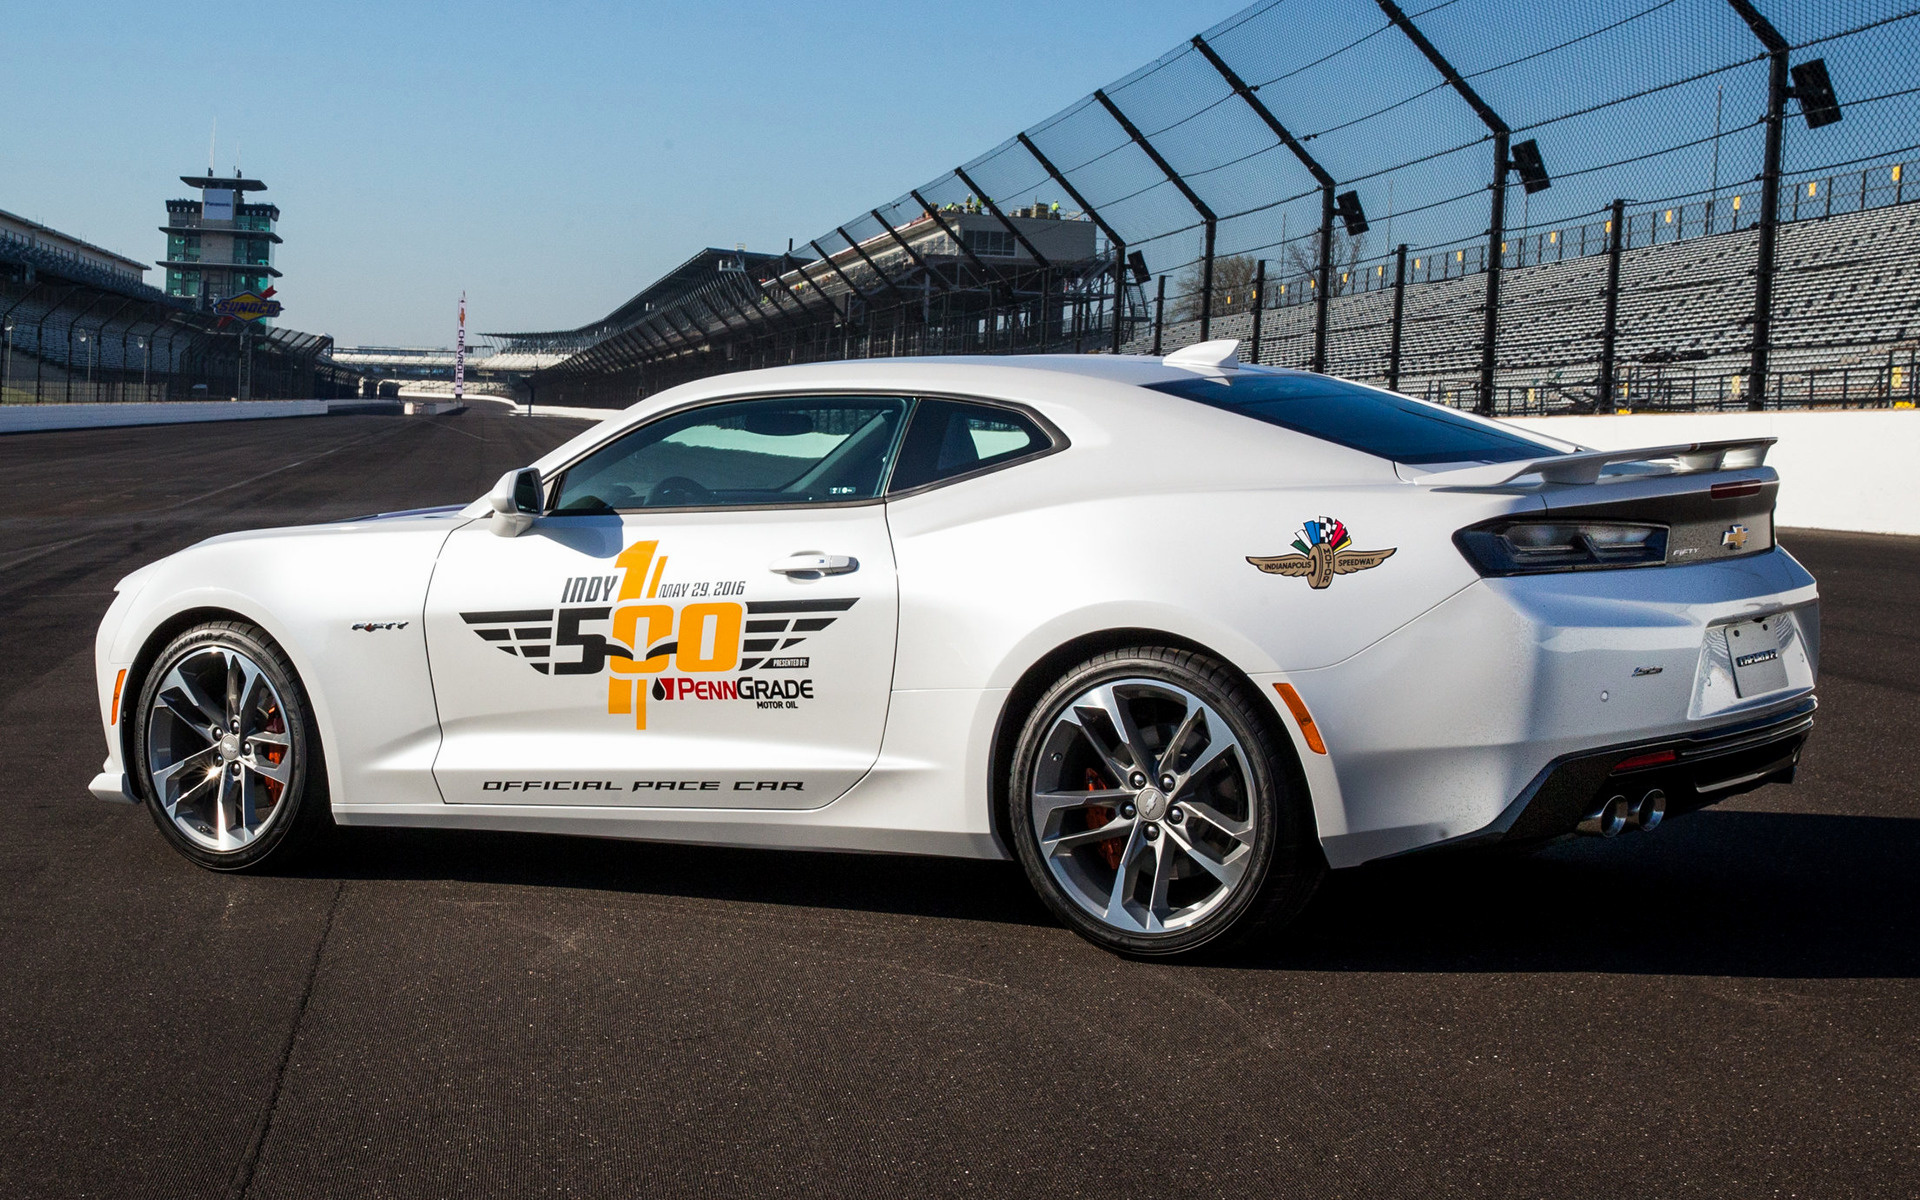 Chevrolet Camaro Zl1 >> 2016 Chevrolet Camaro SS Indy 500 Pace Car - Wallpapers ...